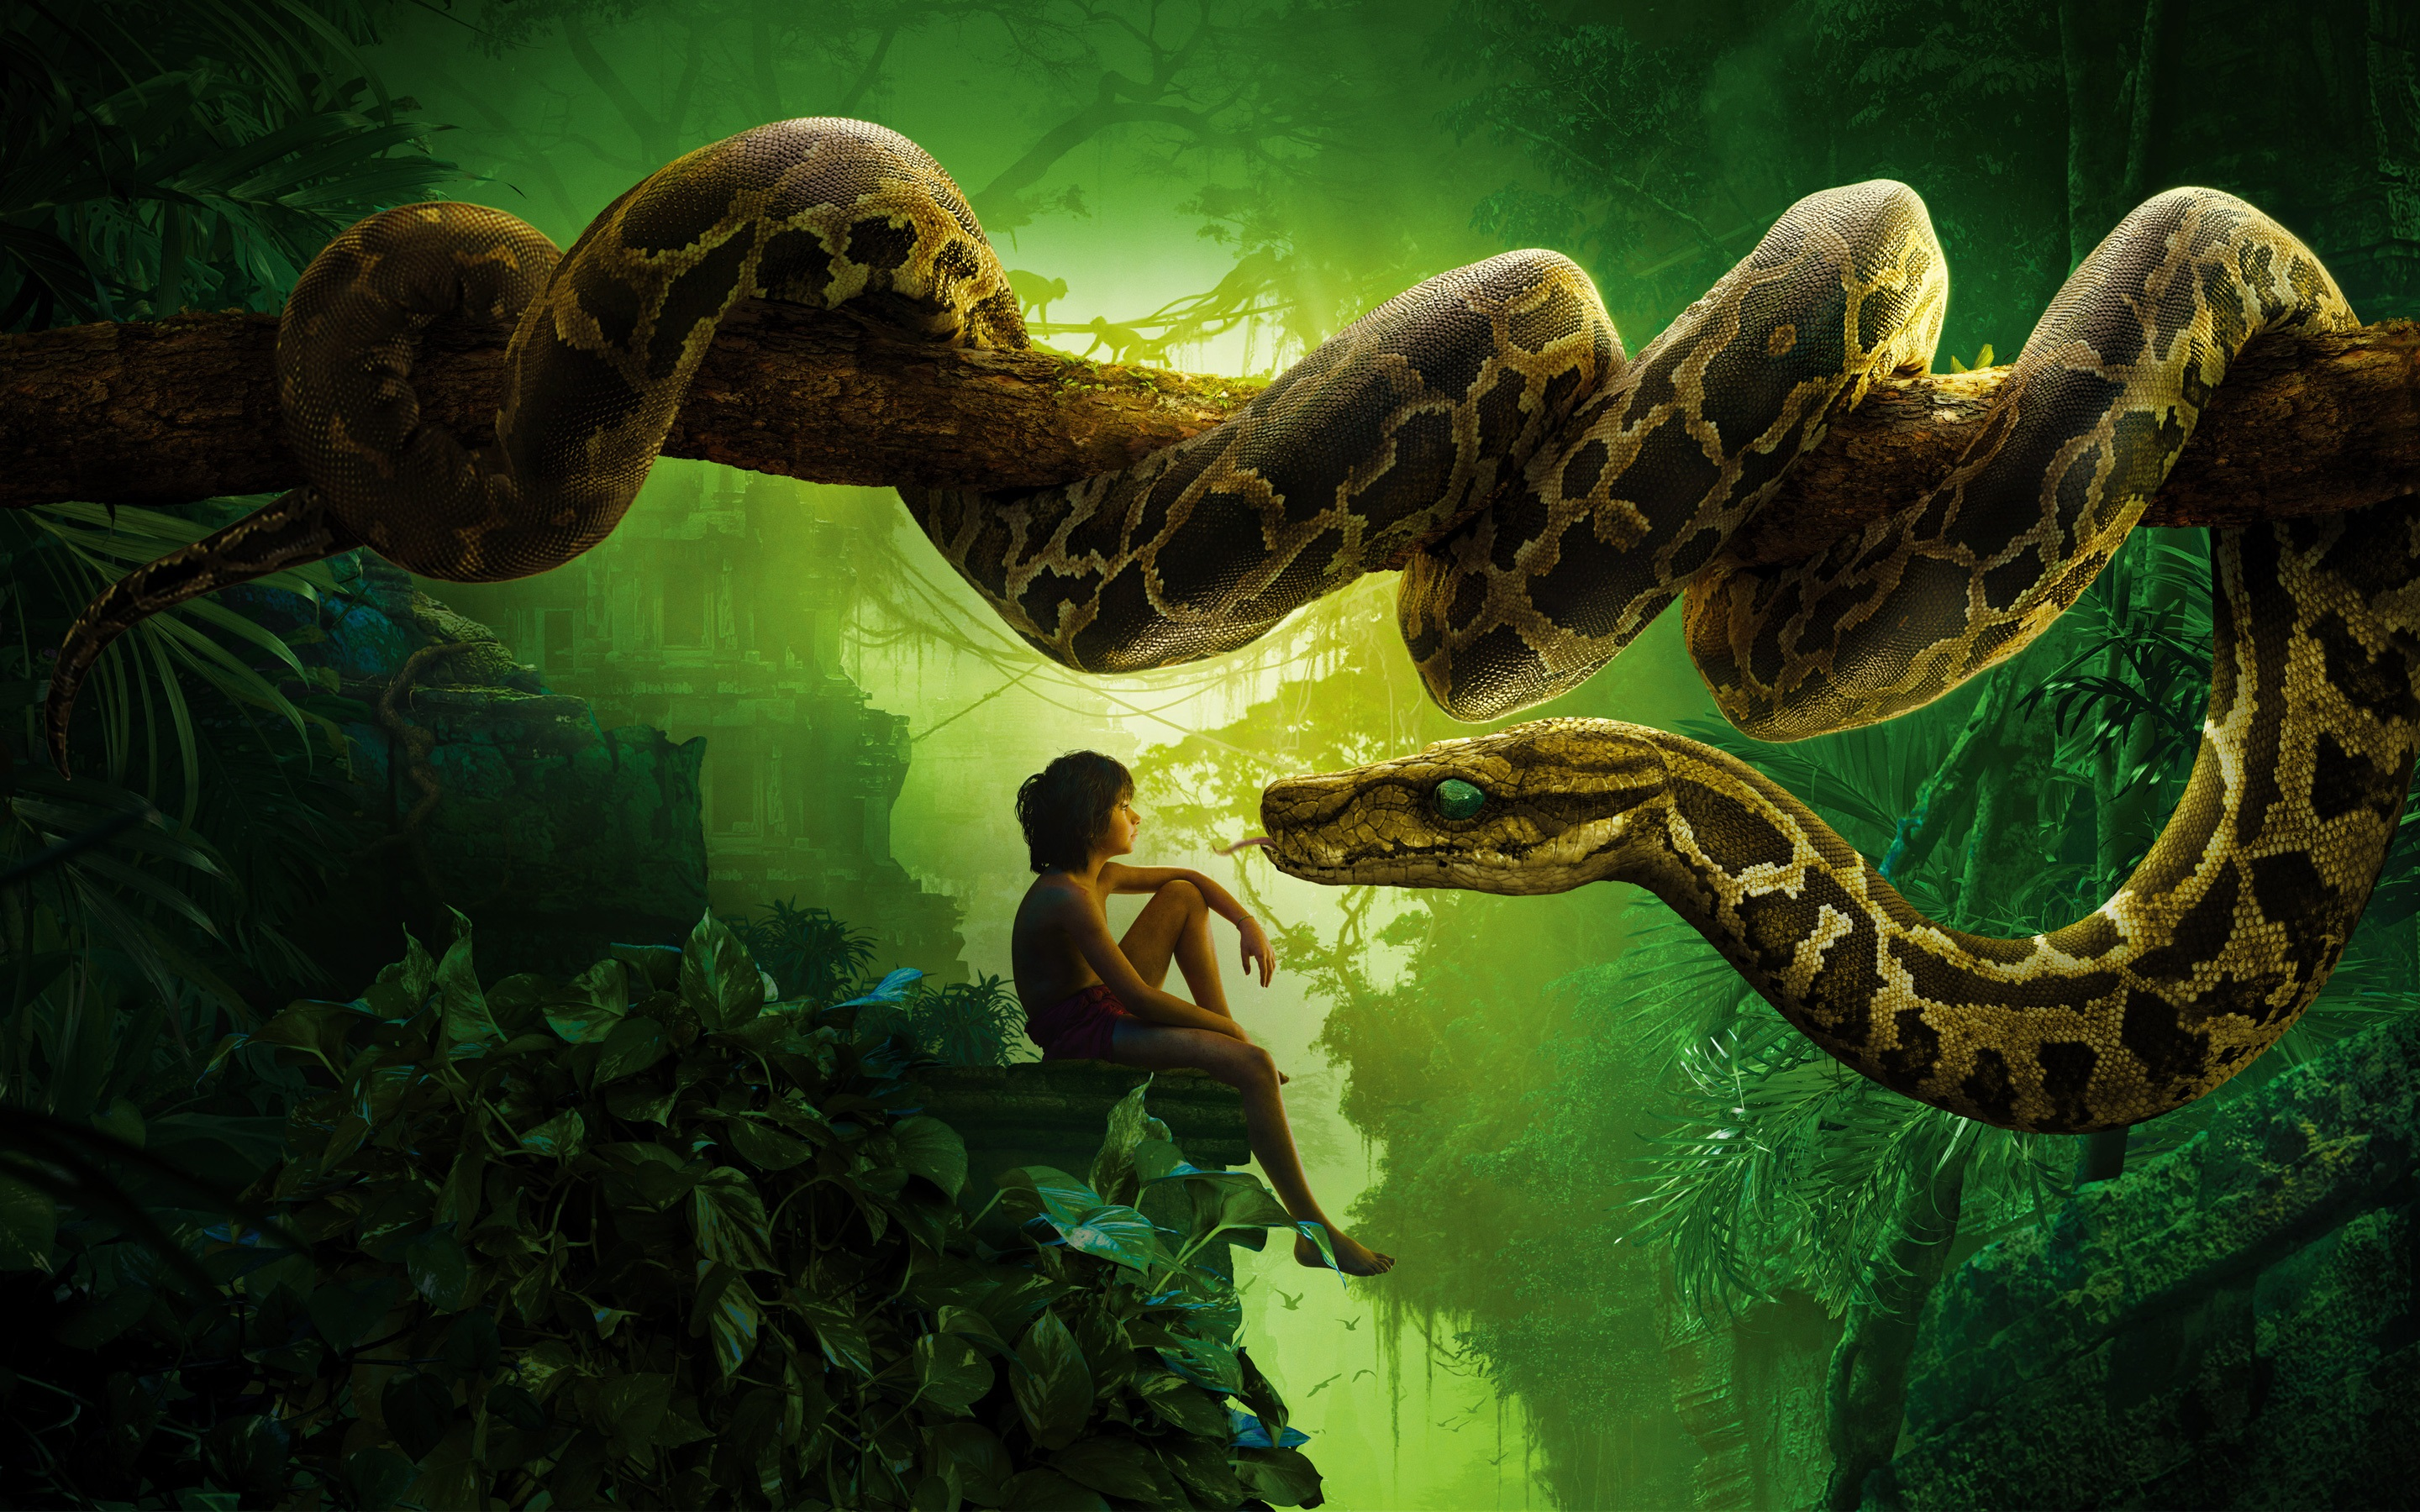 Jungle Book, boy and snake 2880x1800 HD ...